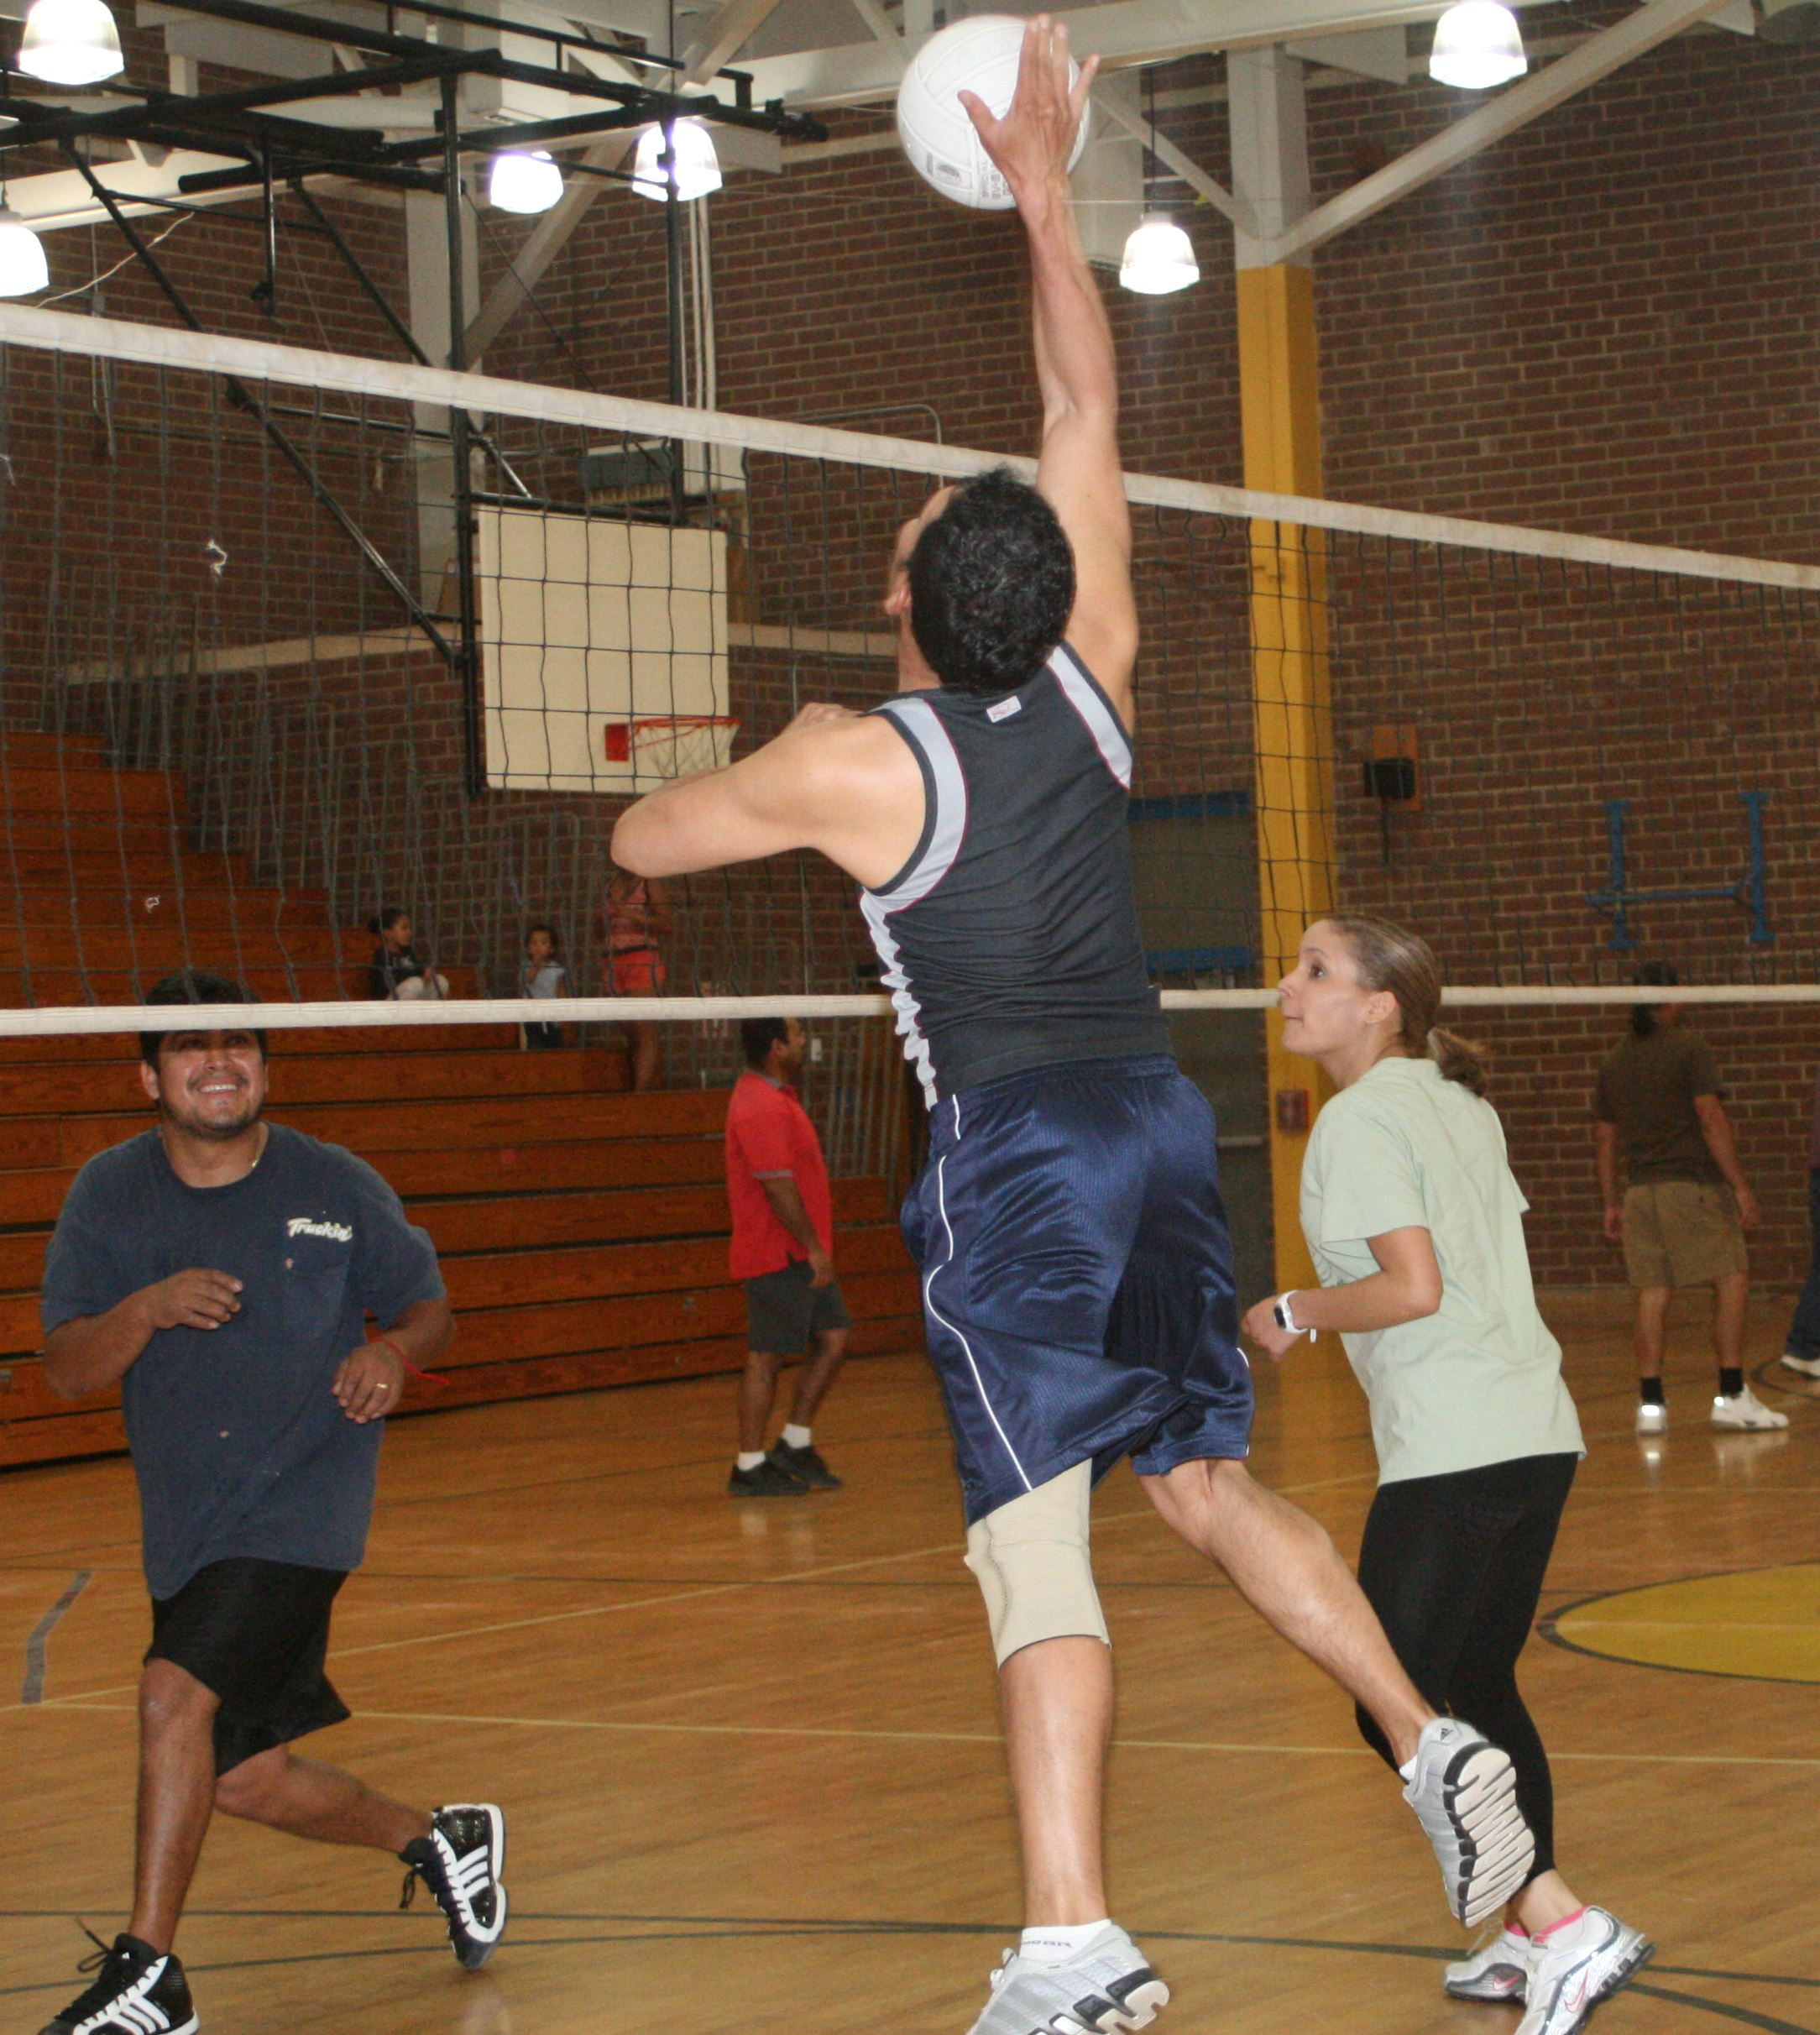 VolleyballDropIn.jpg